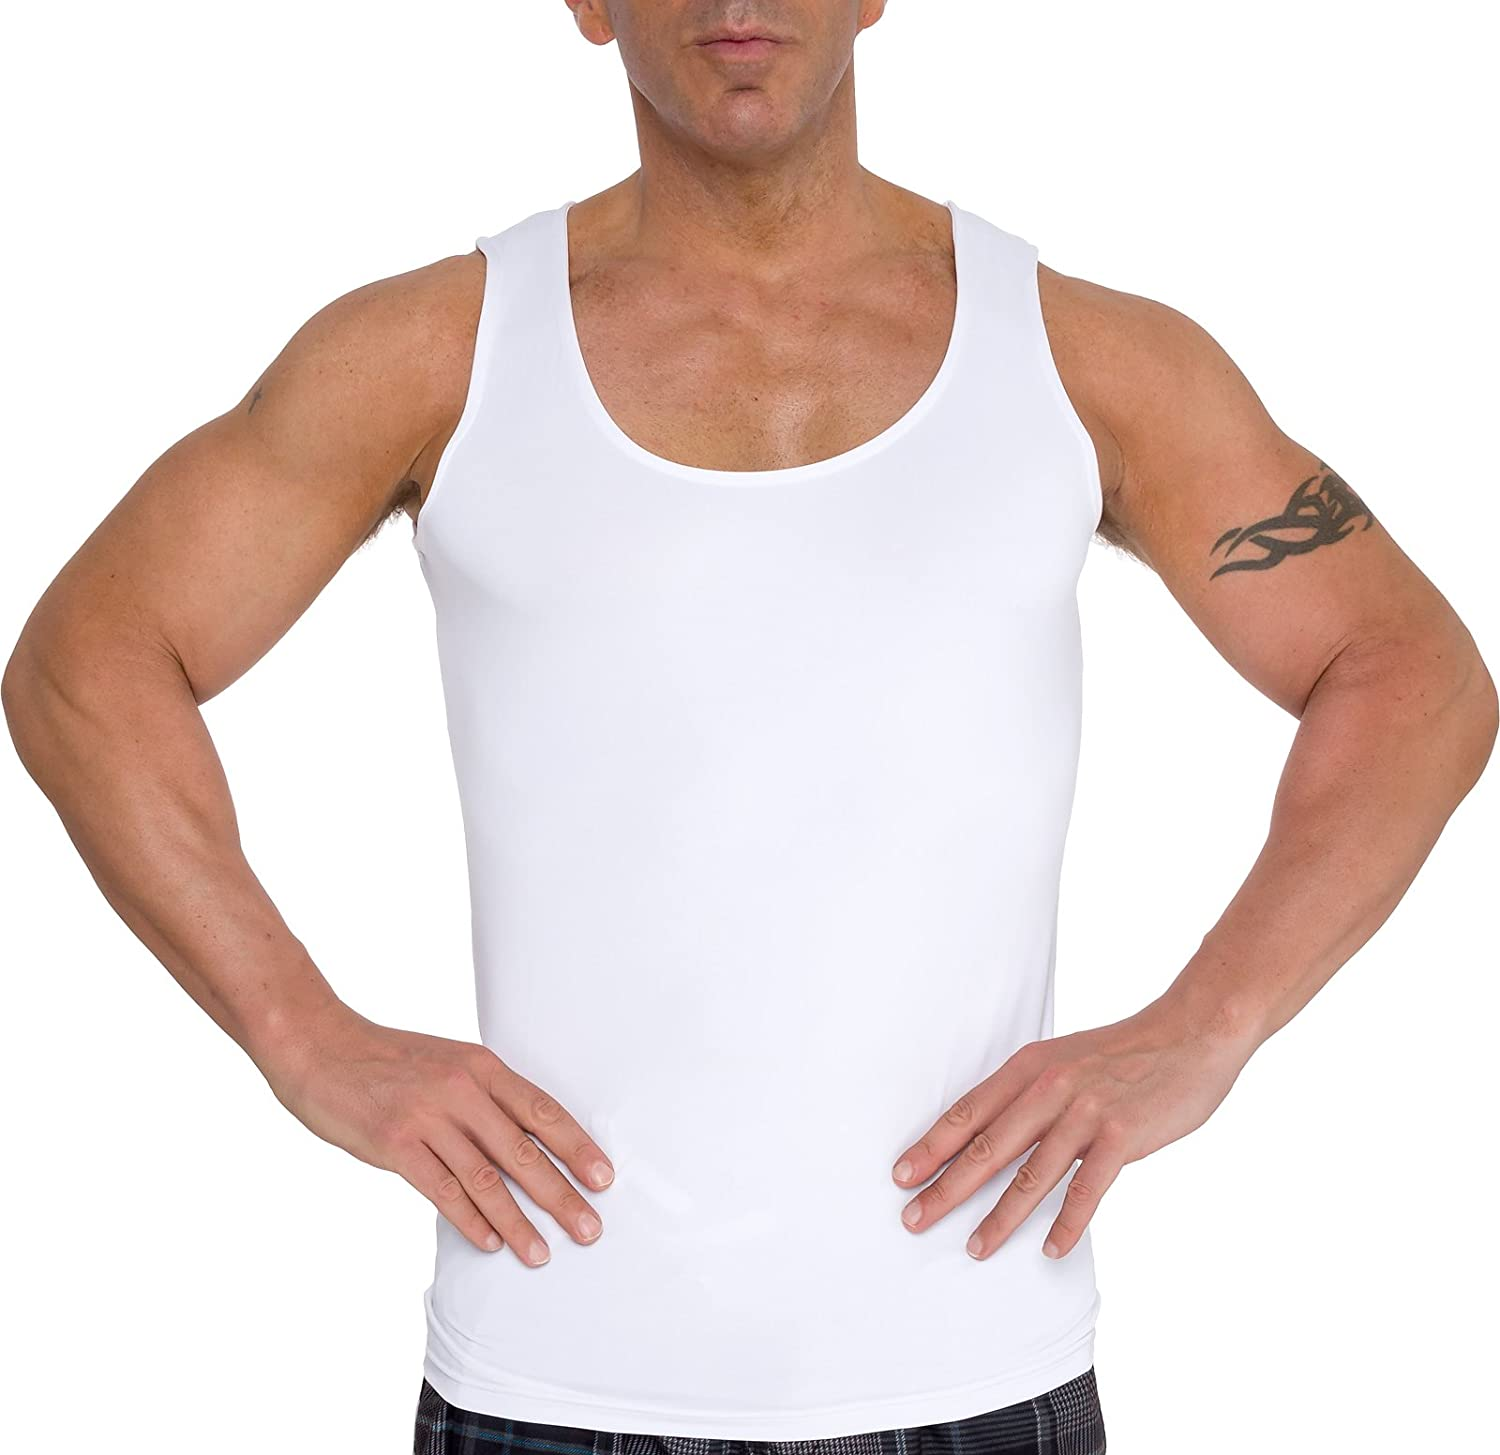 LISH Men's Slimming Light Compression Tank Top Shirt - Sleeveless Body Shaper Shirt for Gynecomastia, Weight Loss by